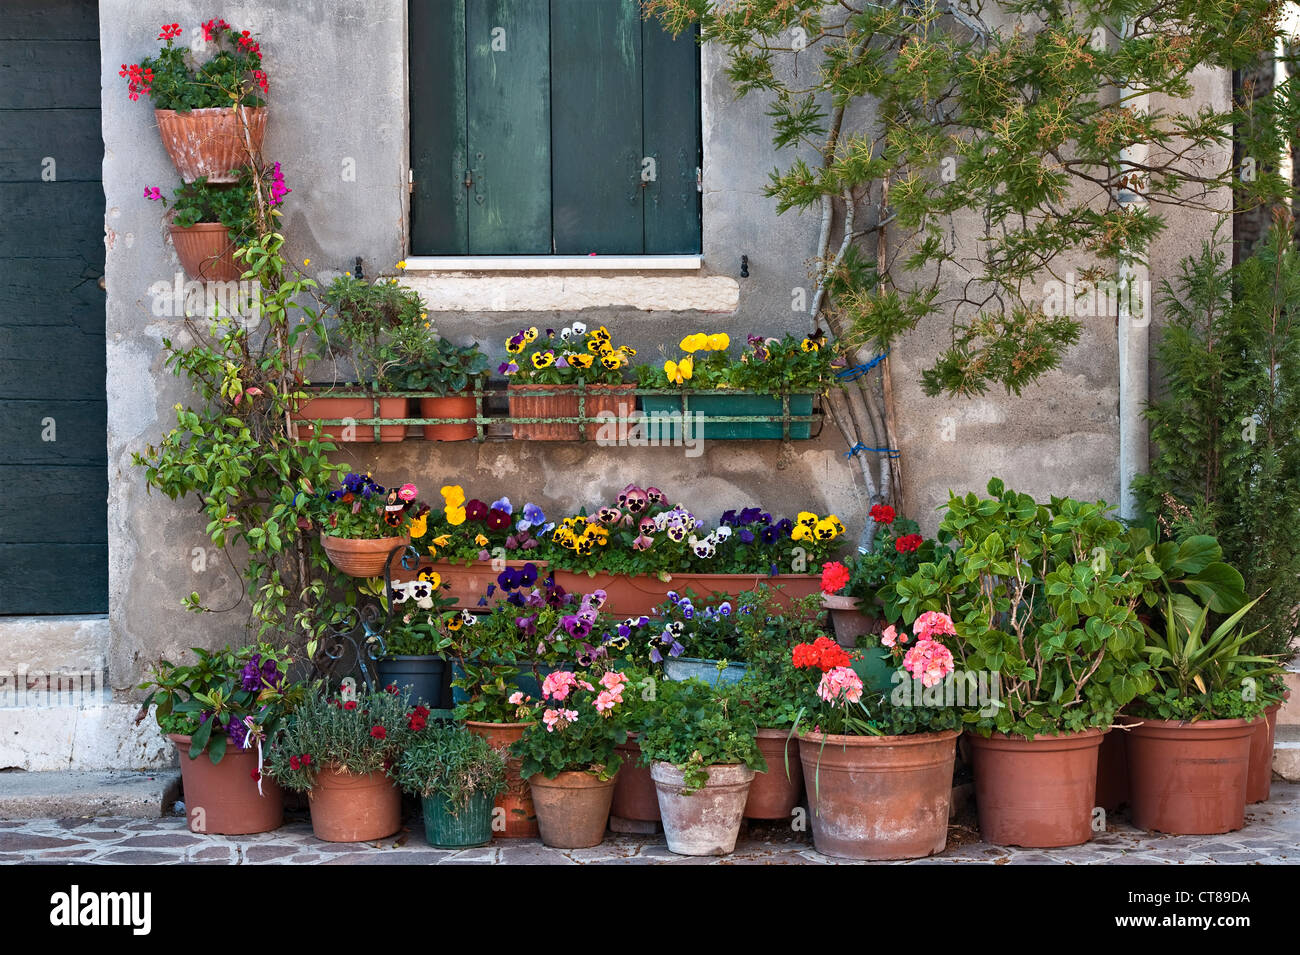 Venice, Italy. Pots of flowers outside a green,shuttered